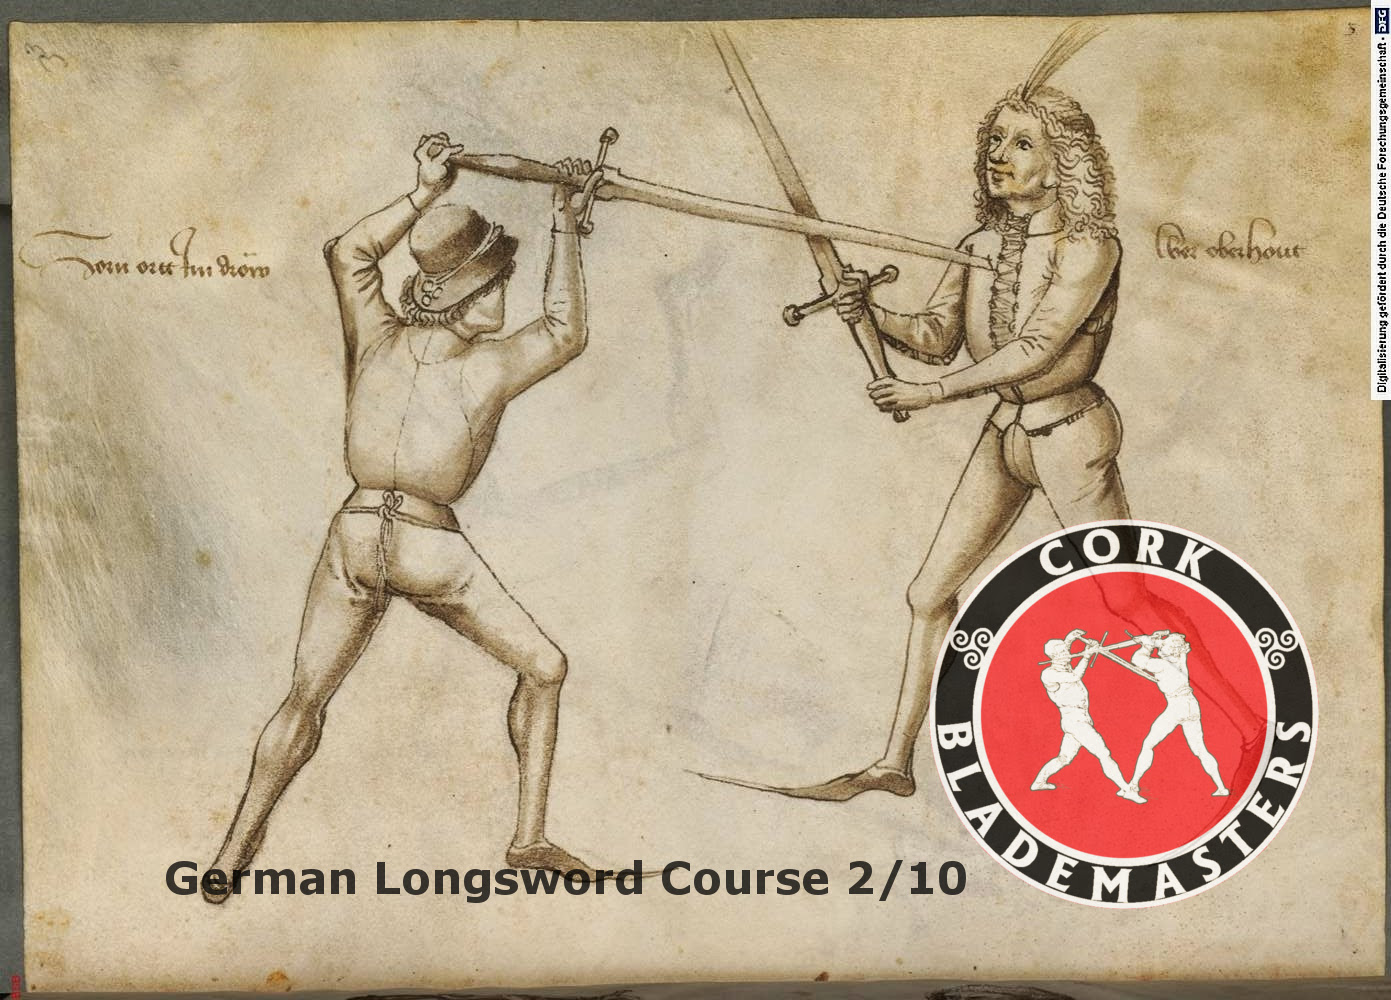 German Longsword Course 2/10 – Mon 02/10/2017